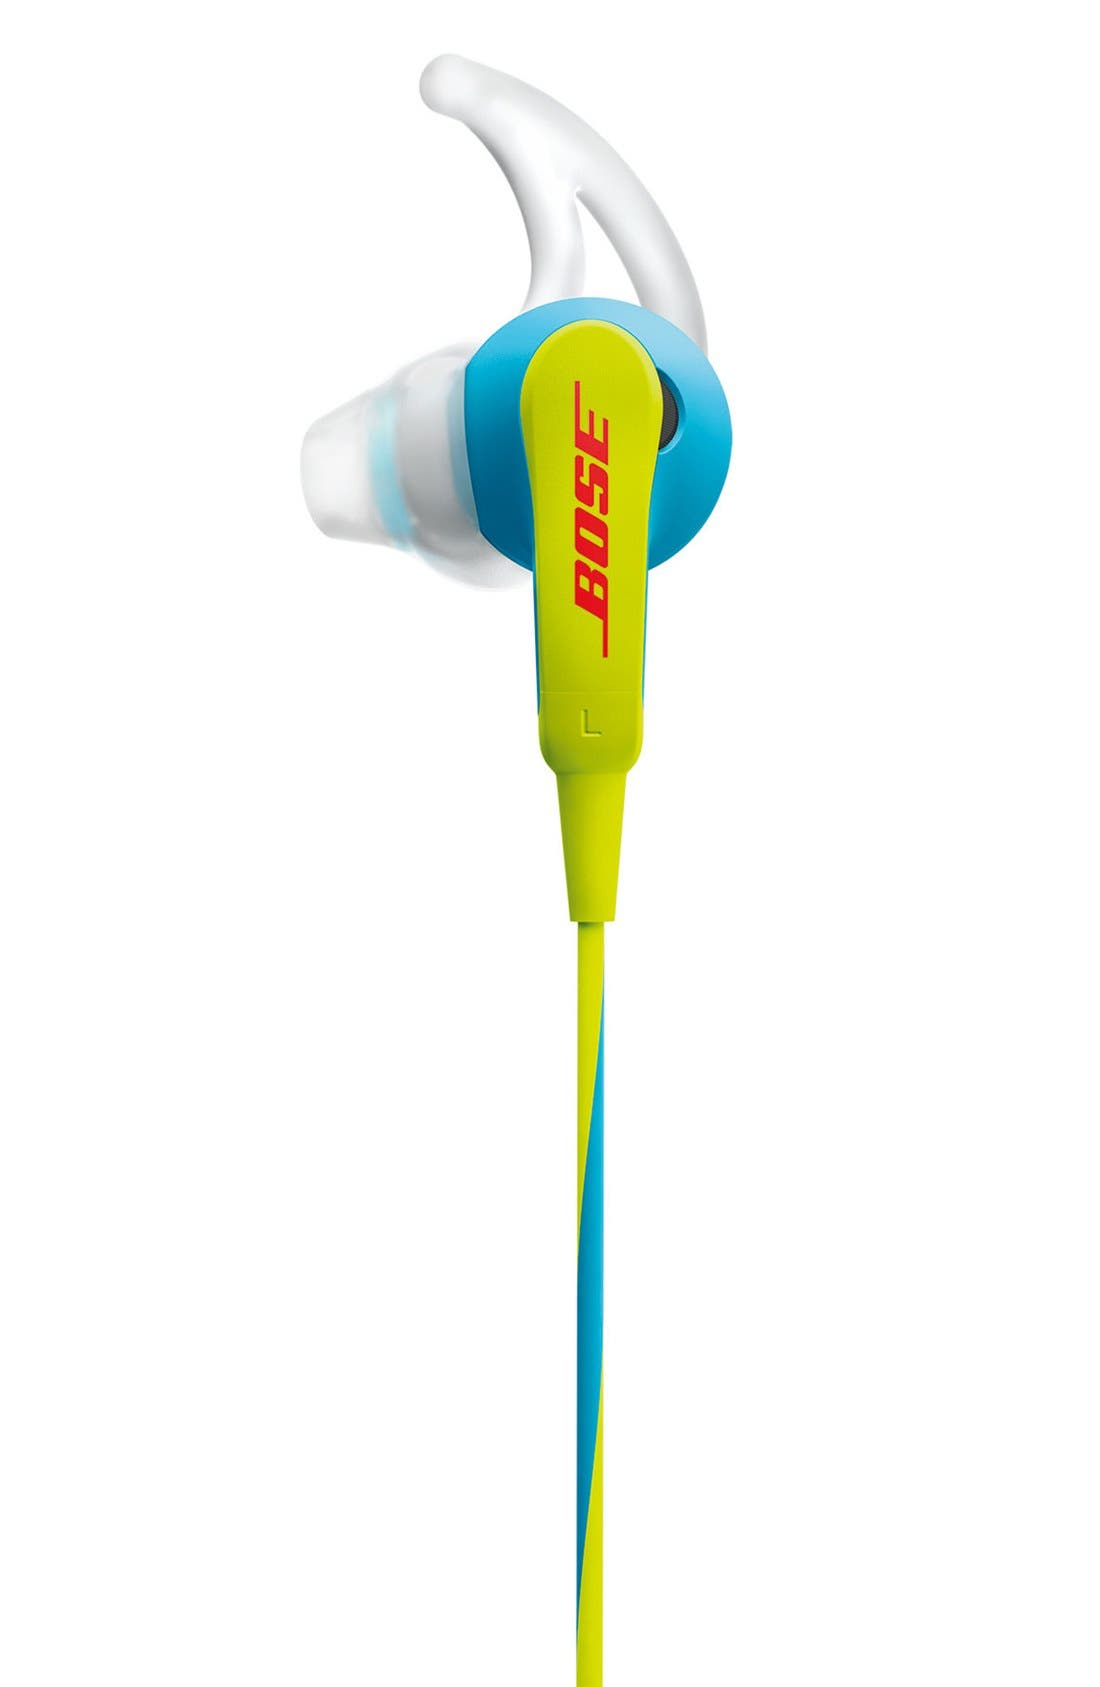 SoundSport<sup>®</sup> In-Ear Headphones,                             Main thumbnail 1, color,                             400